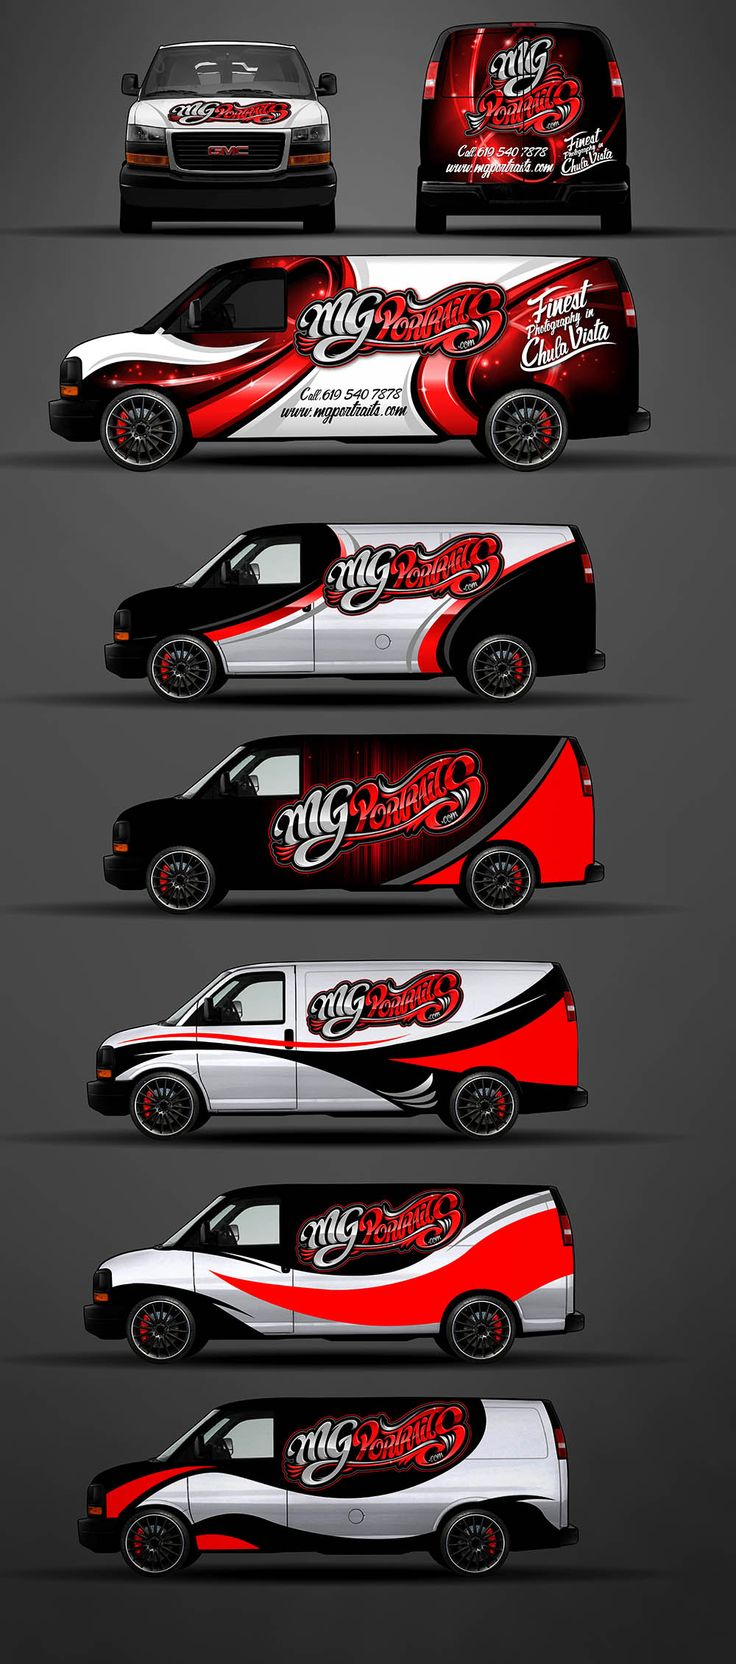 Best Car Wrap Ideas On Pinterest Vehicle Wraps Wraps For - Custom decal graphics on vehiclesvinyl car wraps in houston tx